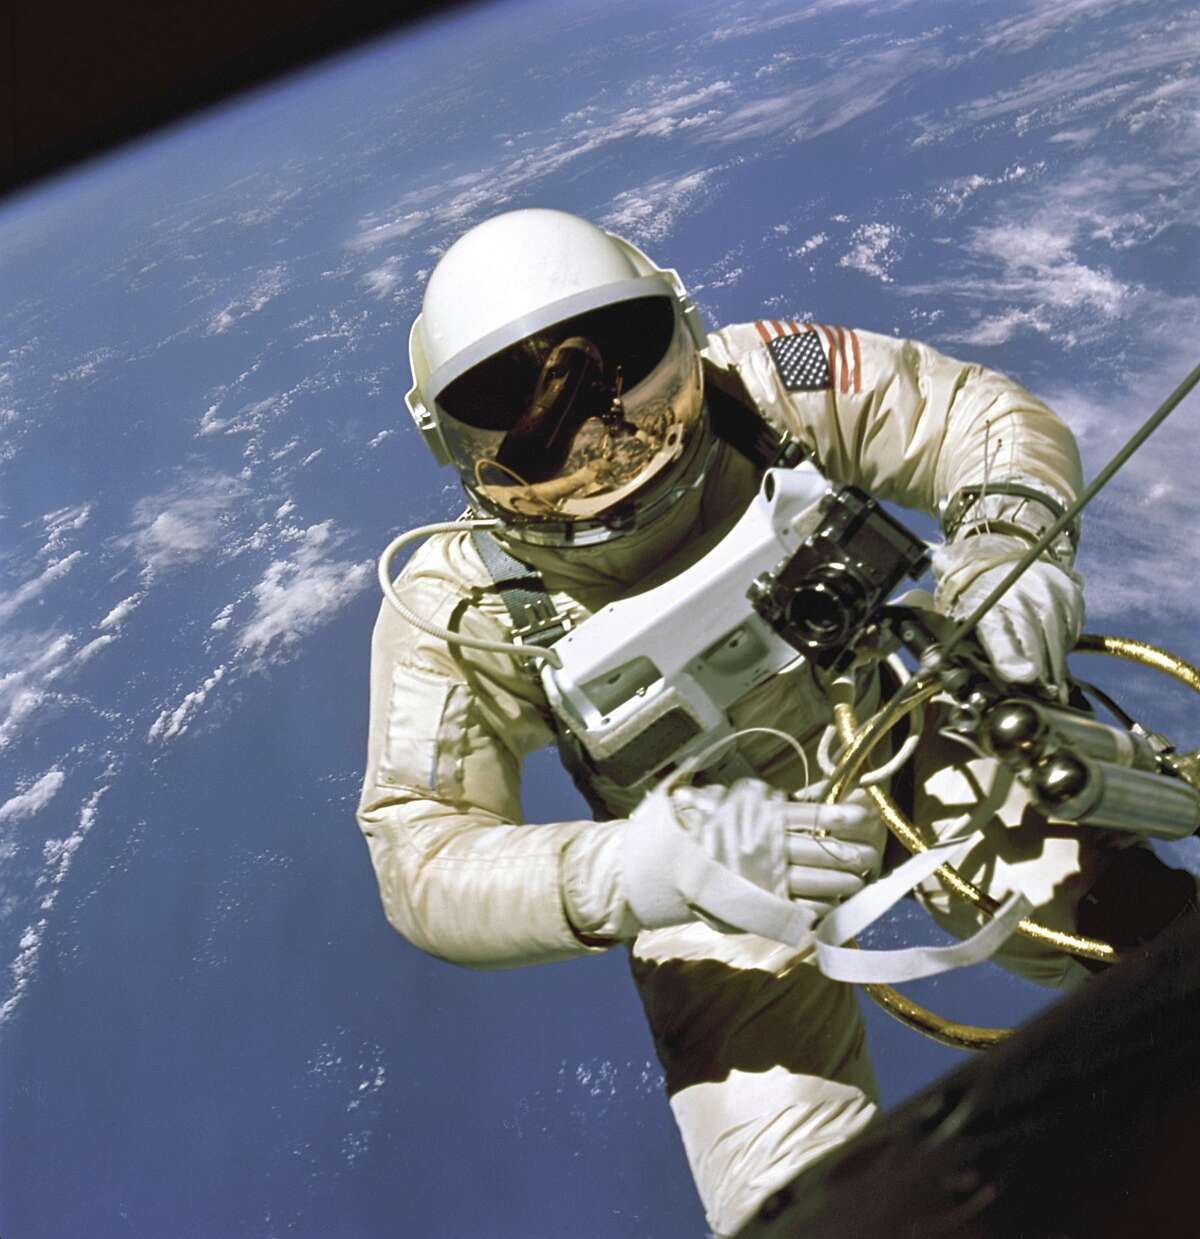 Ed White, the first American astronaut to walk in space, is seen during the Gemini 4 mission in 1965.